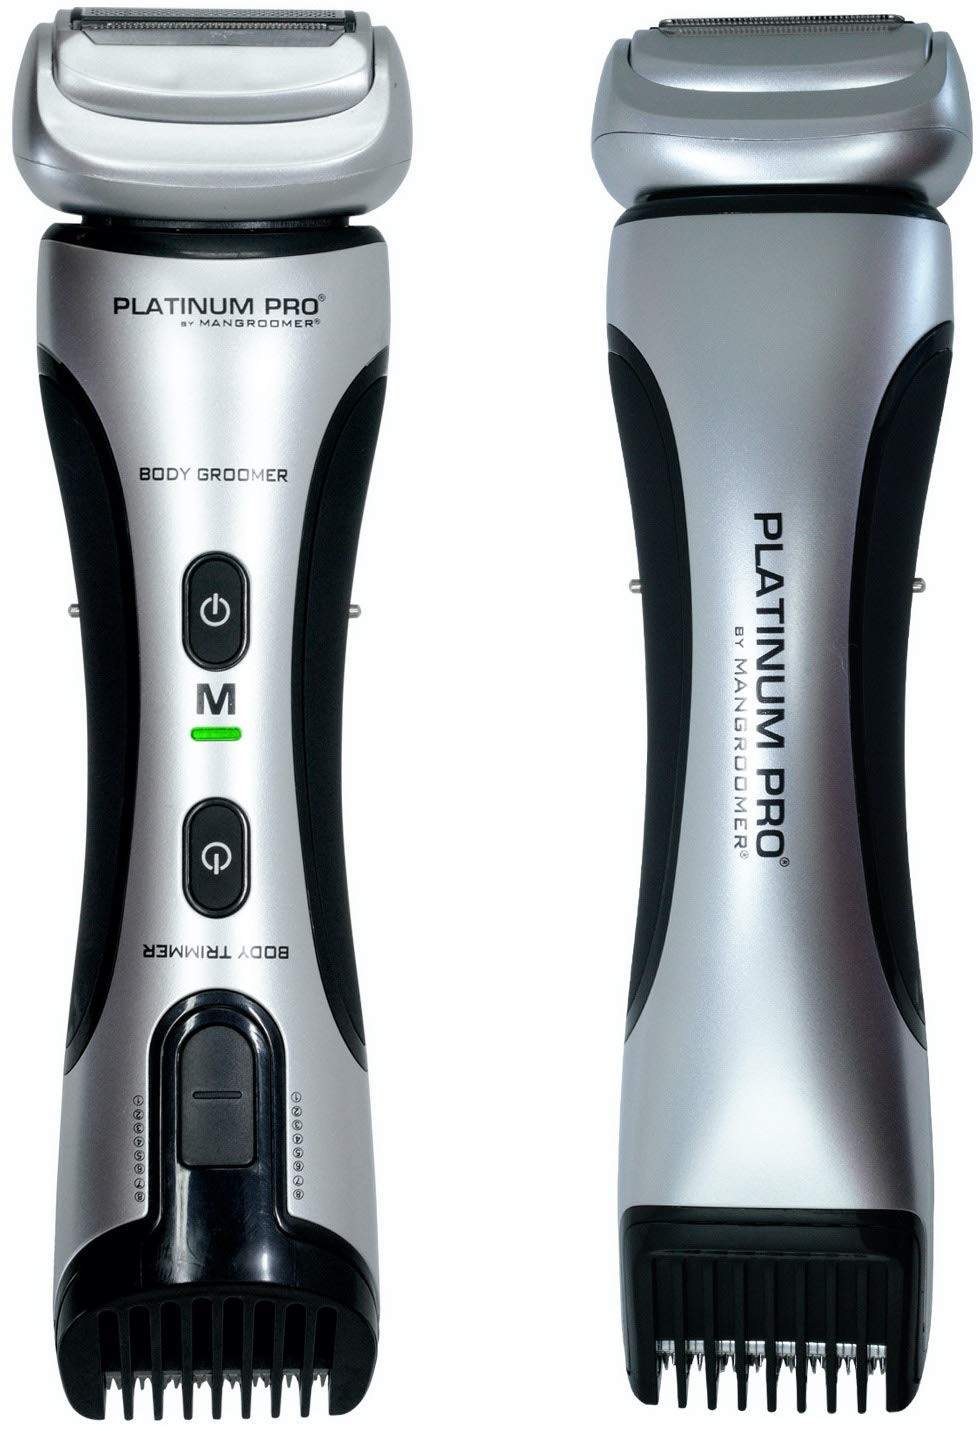 PLATINUM PRO by MANGROOMER - New Body Groomer, Ball Groomer and Body Trimmer with Lithium Max Batter